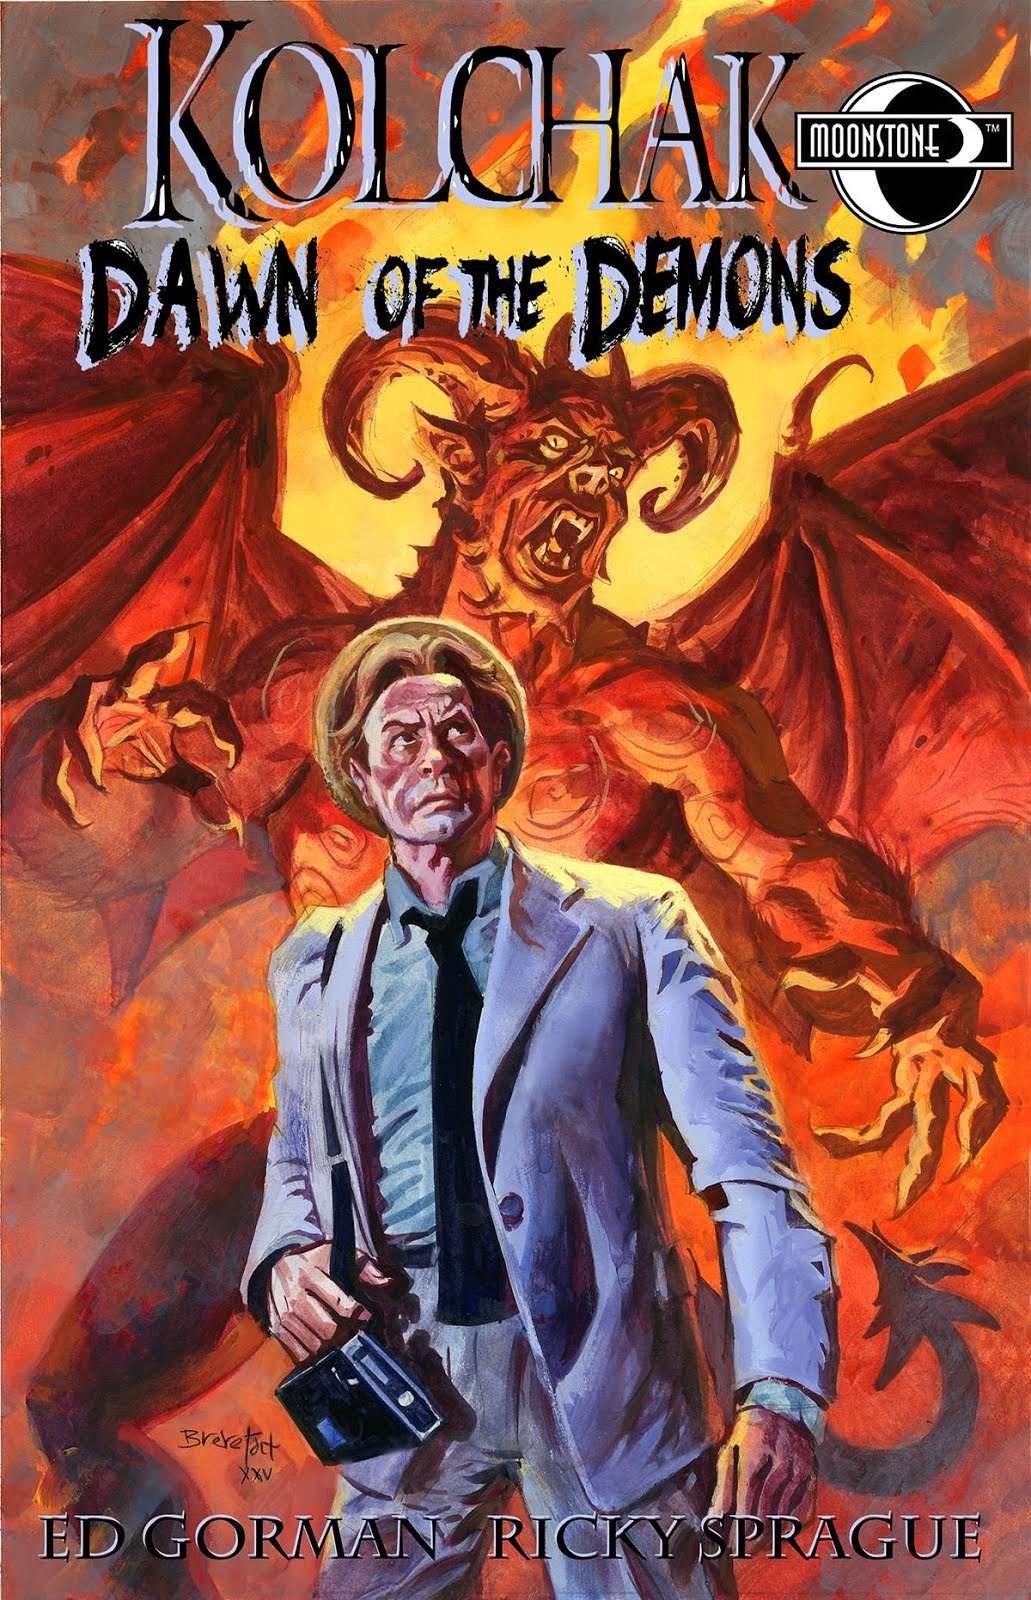 Order Kolchak: Dawn of the Demons from Amazon today!